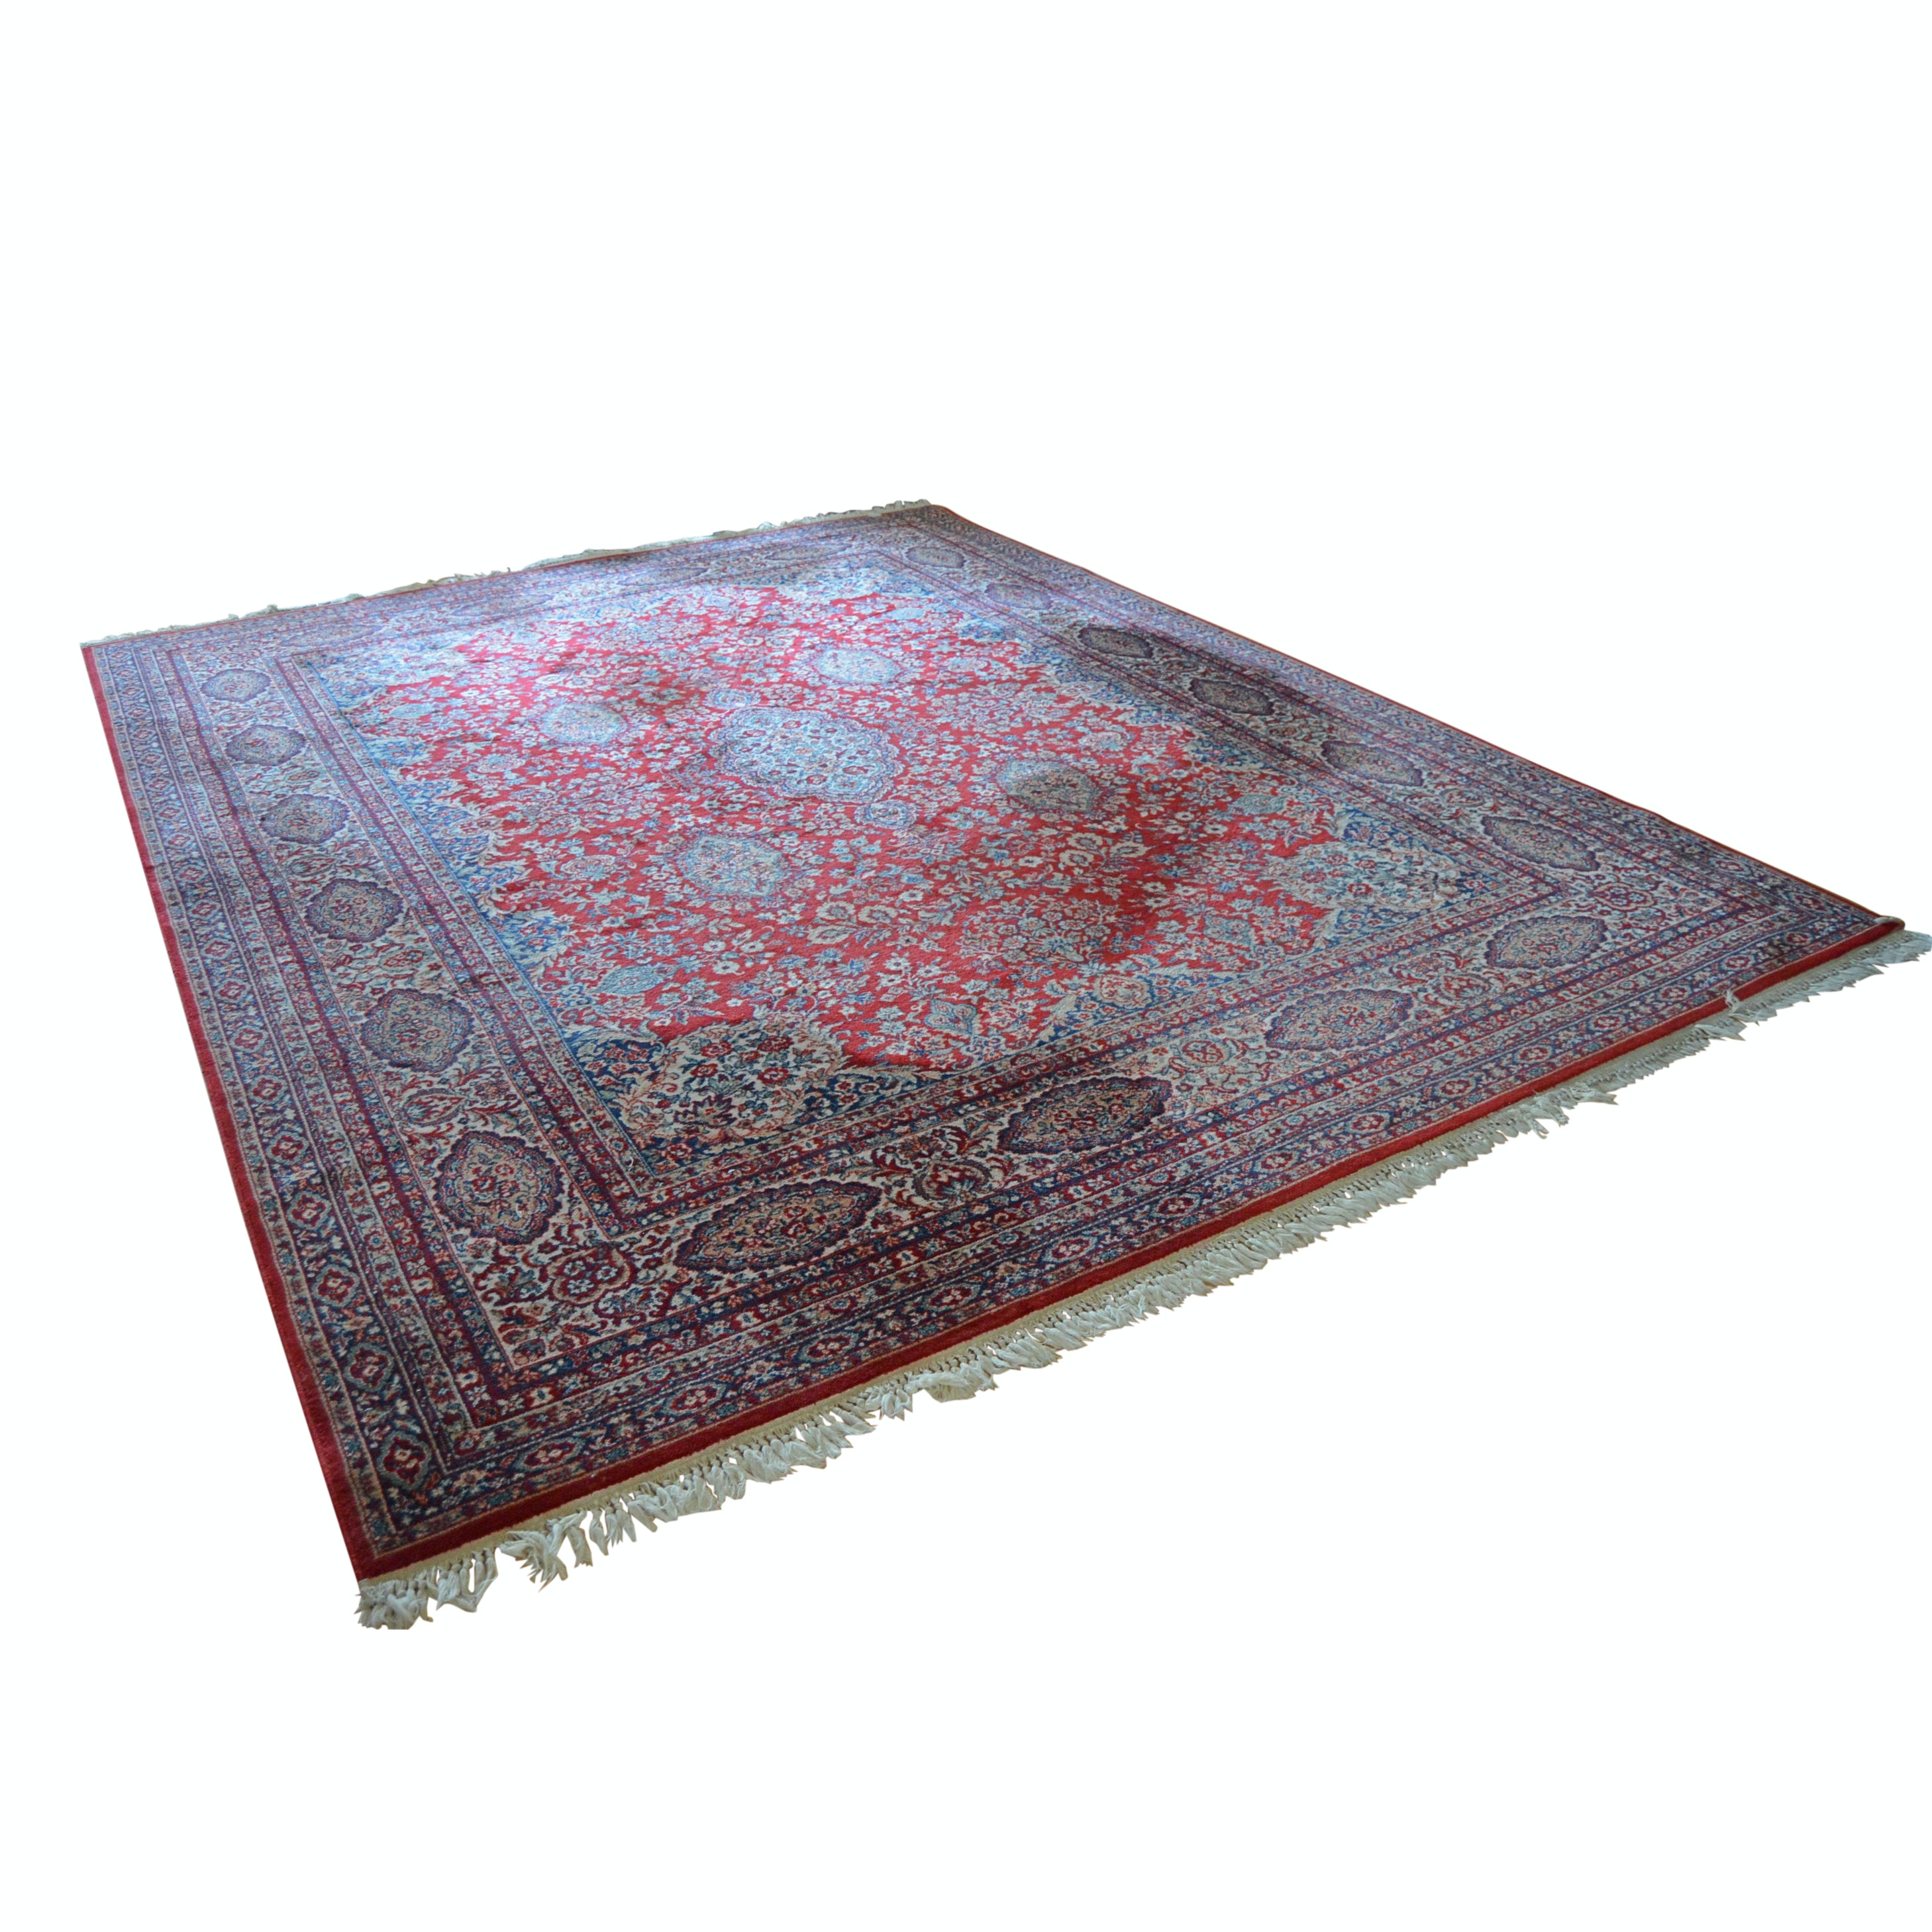 "Machine-Woven Couristan Kashimar Collection ""Red Kerman"" Area Rug"